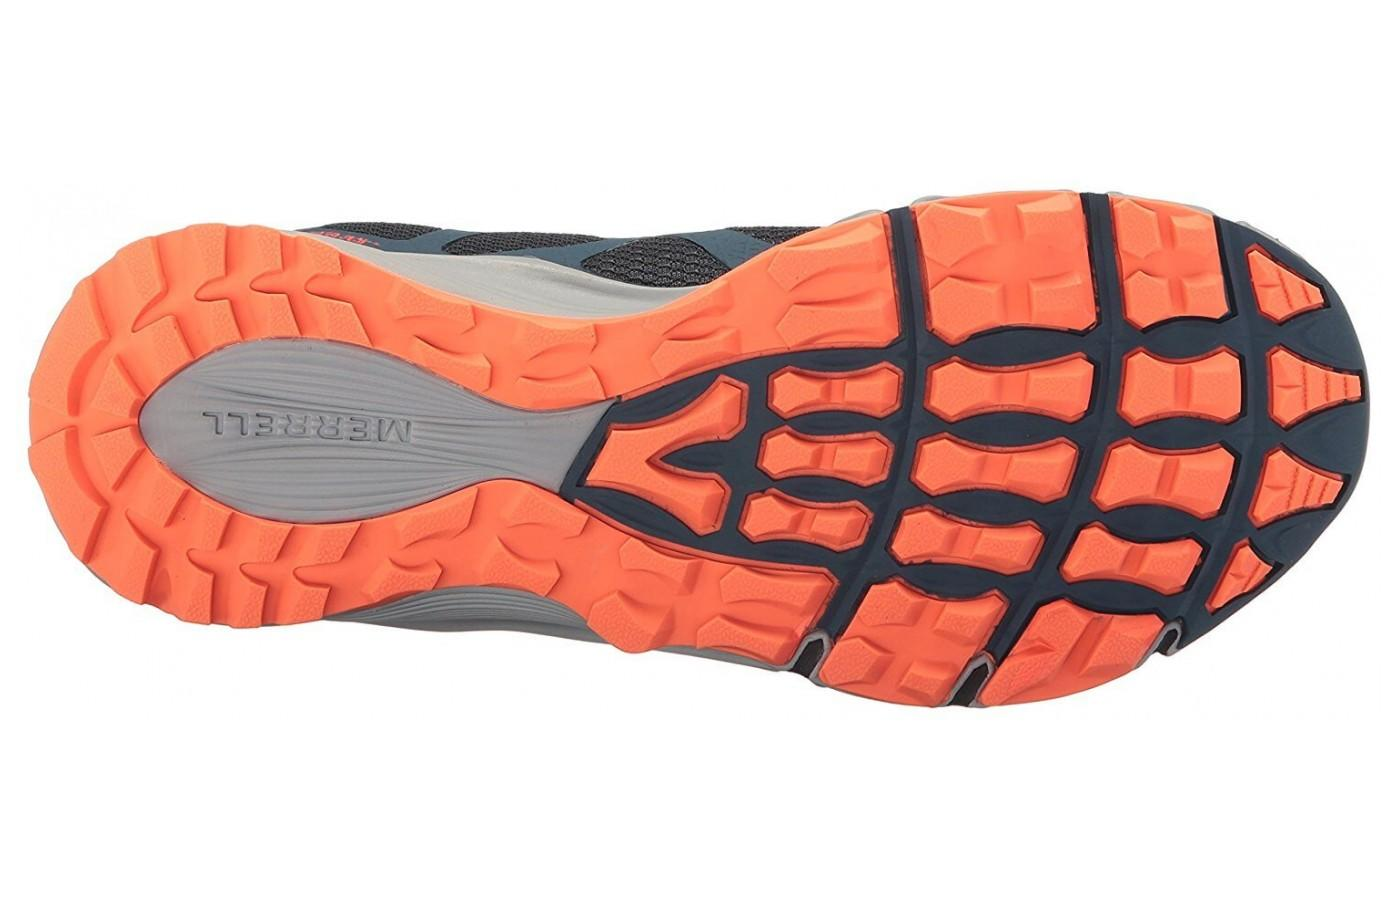 Merrell Agility Charge Flex features skeleton-like lugs underfoot